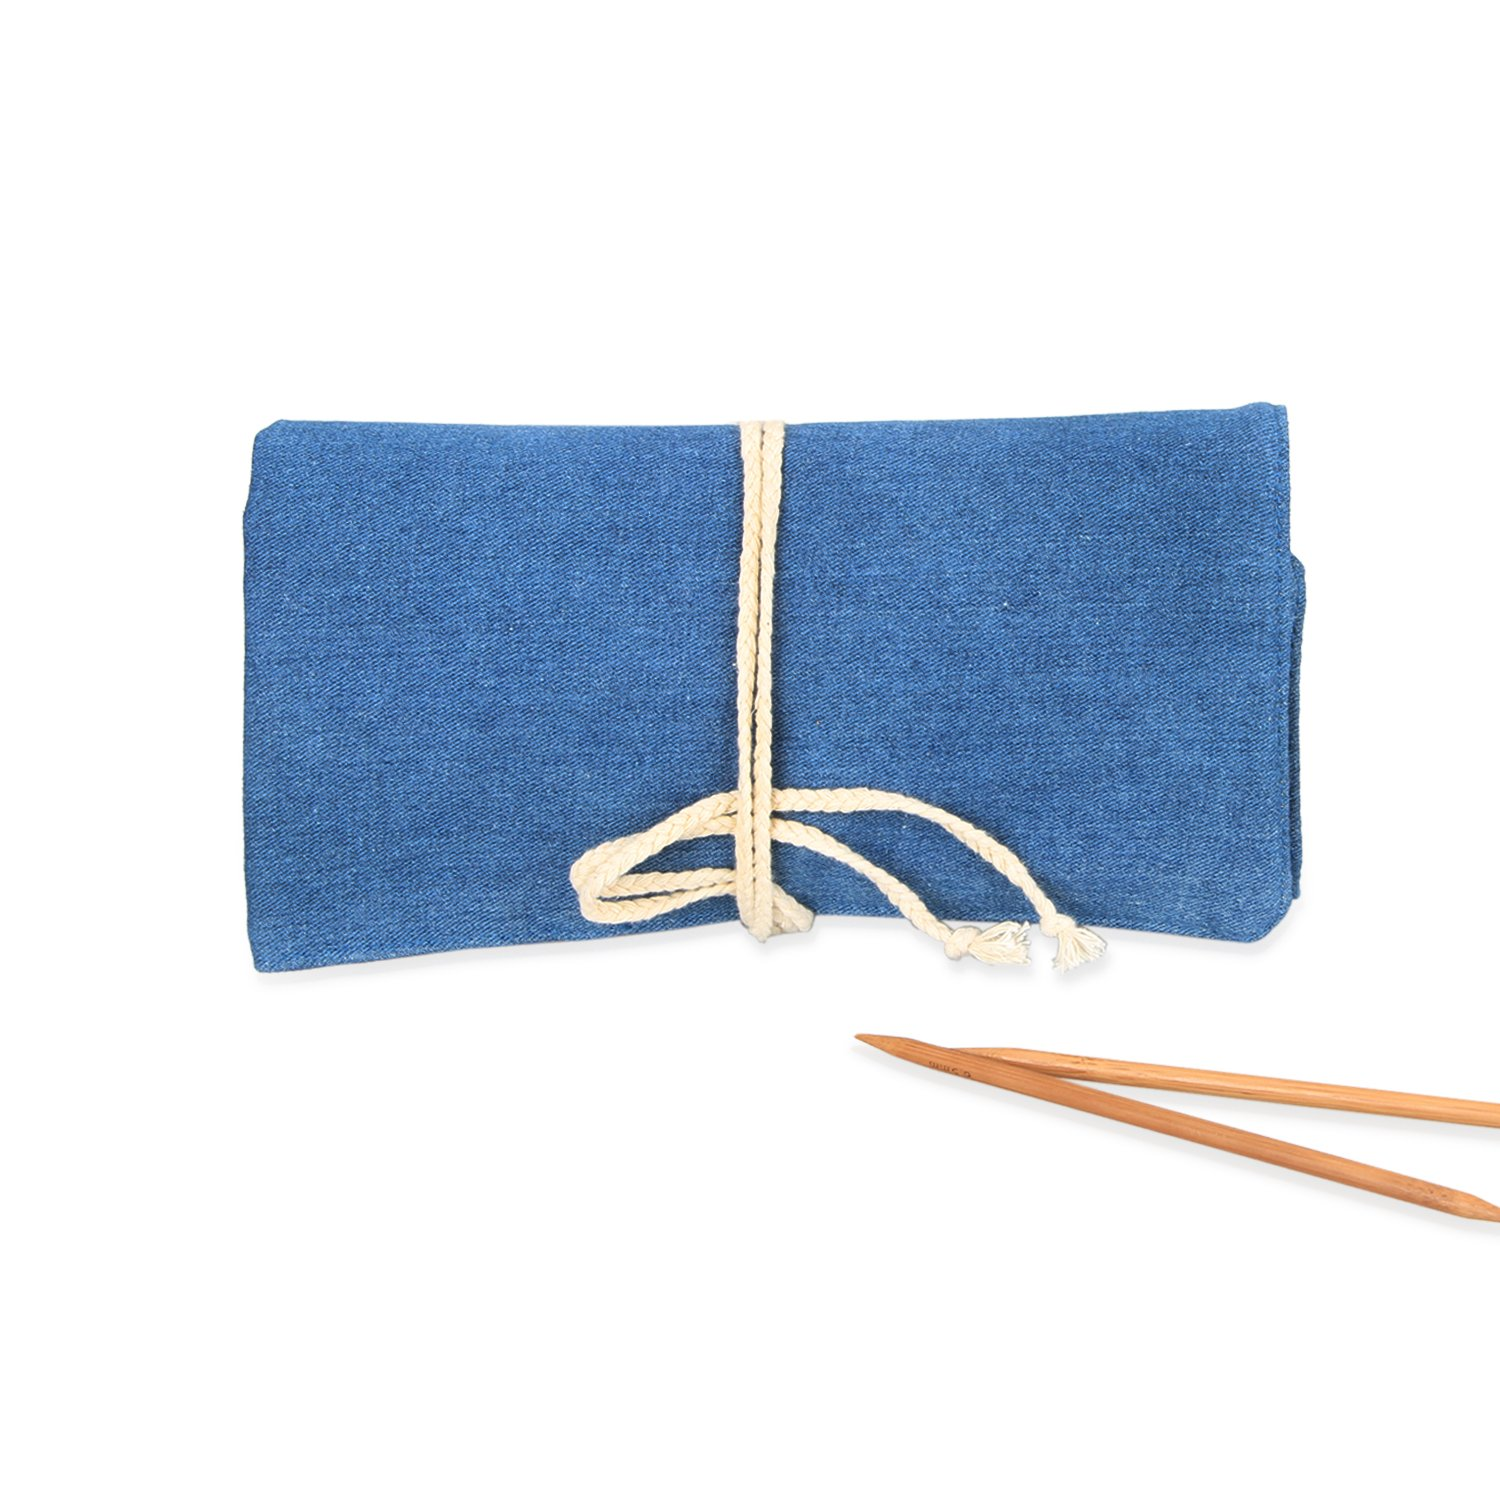 Luxja Knitting Needles Organizer, Rolling Bag for Knitting Needles (up to 10 Inches), Crochet Hooks and Accessories (No Accessories Included), Blue by LUXJA (Image #7)